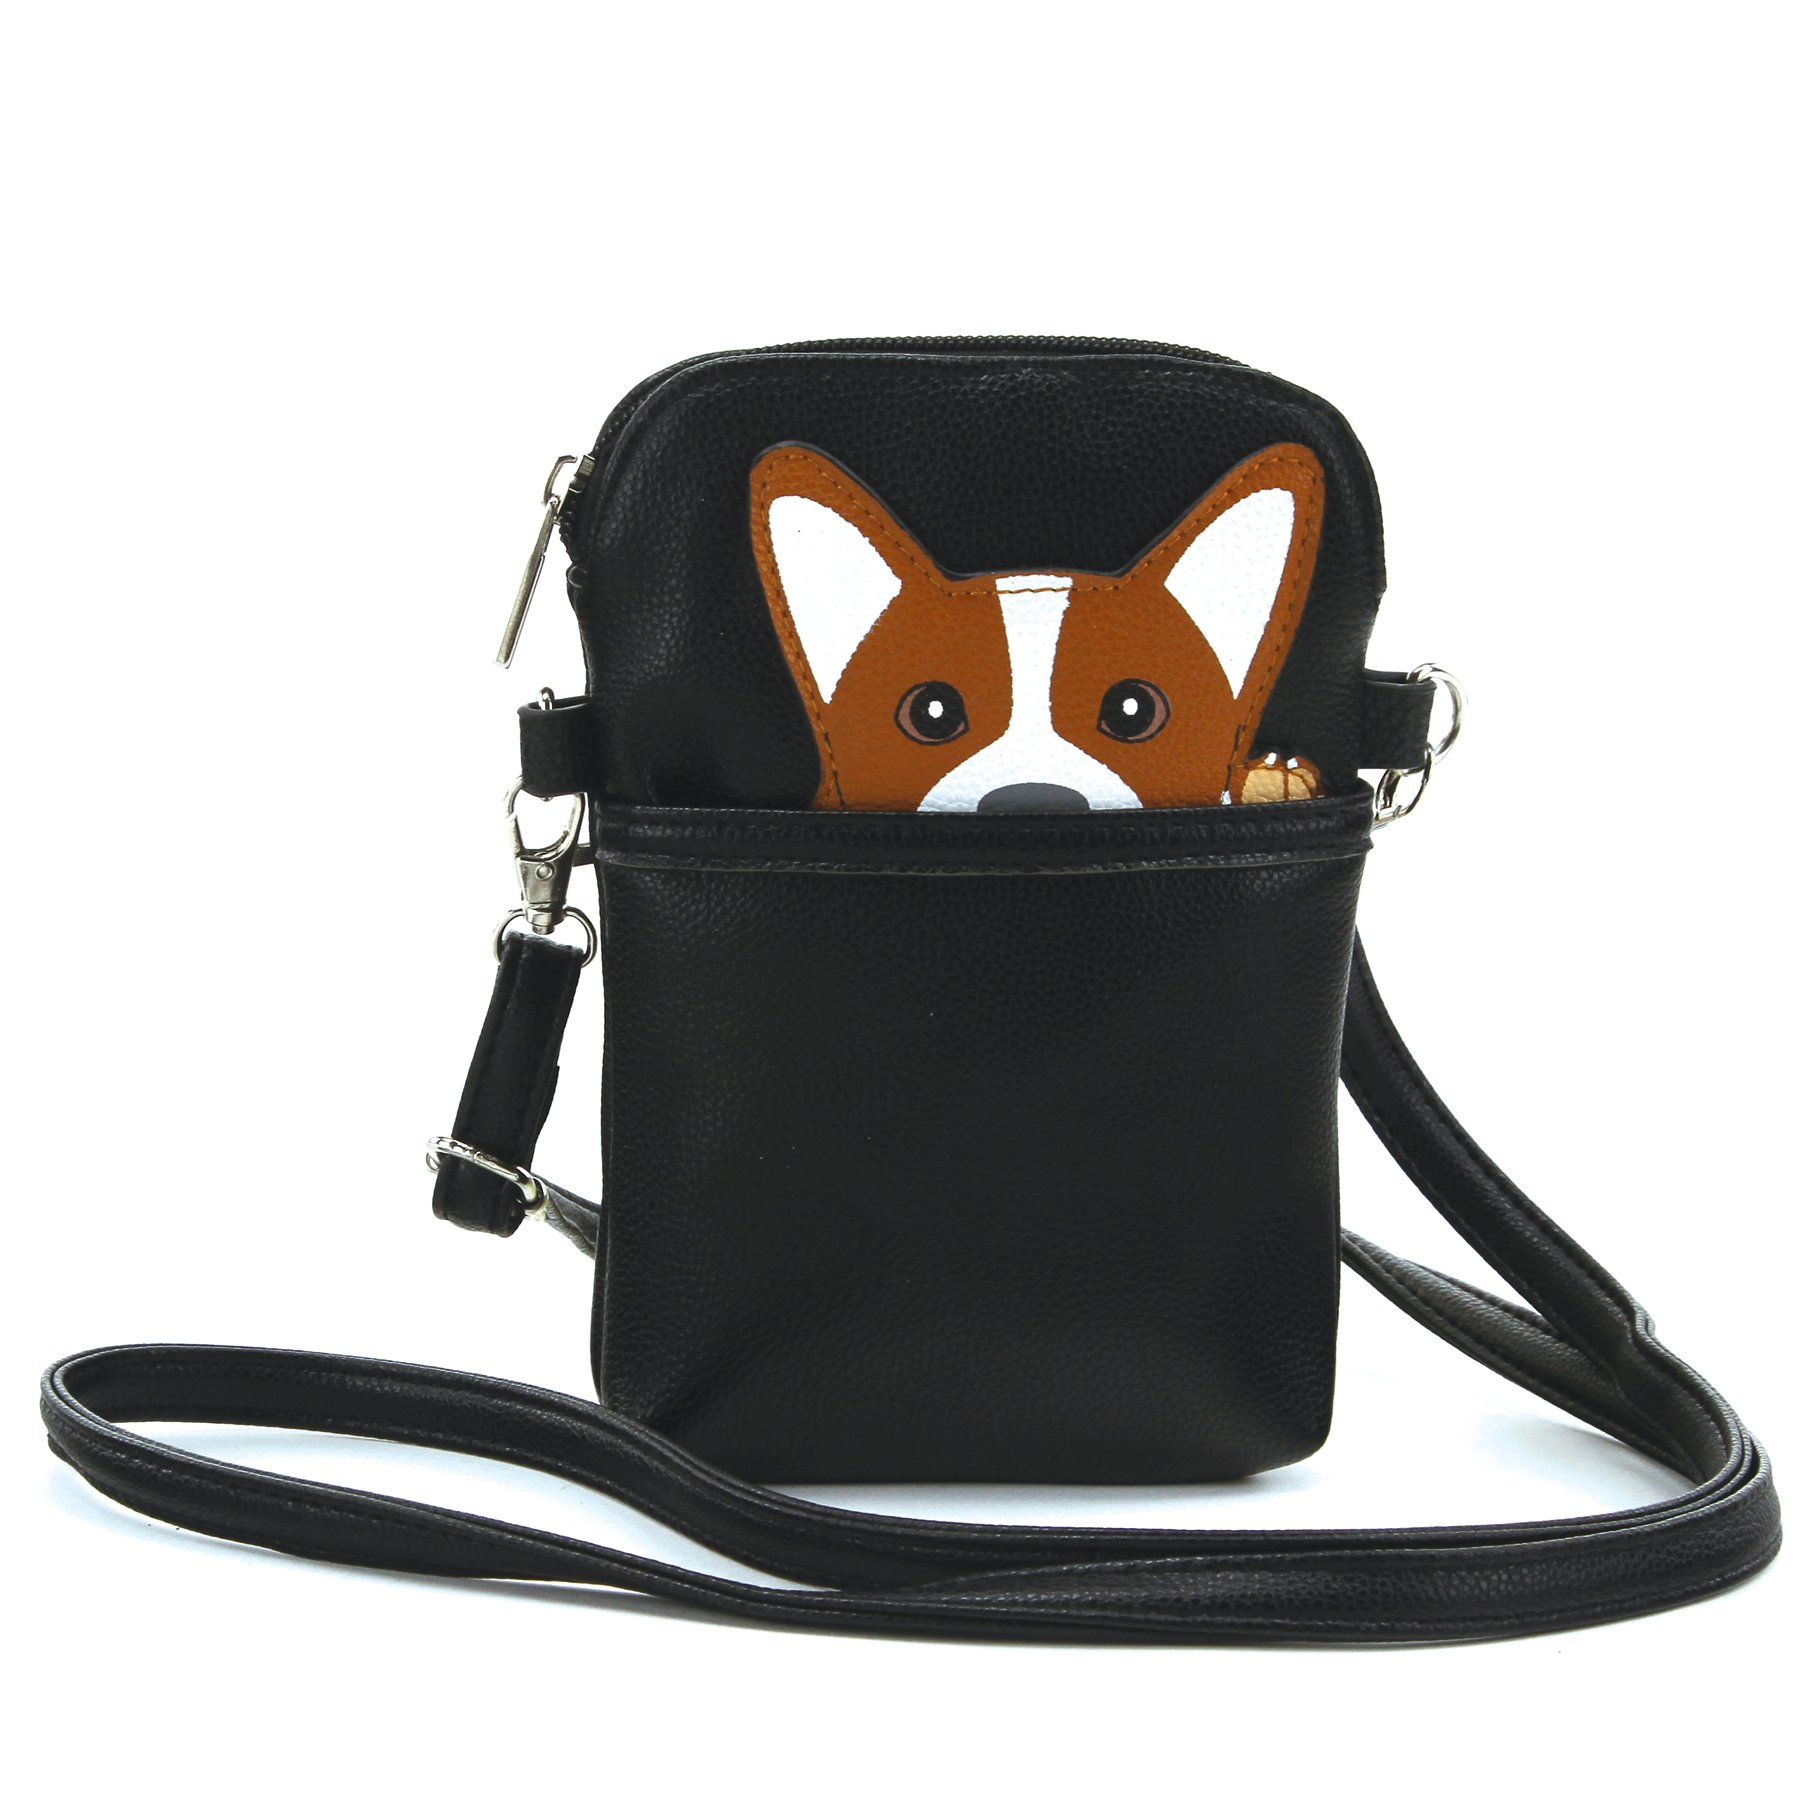 Sleepyville Critters - Peeking Corgi Small Shoulder Bag in Vinyl Material